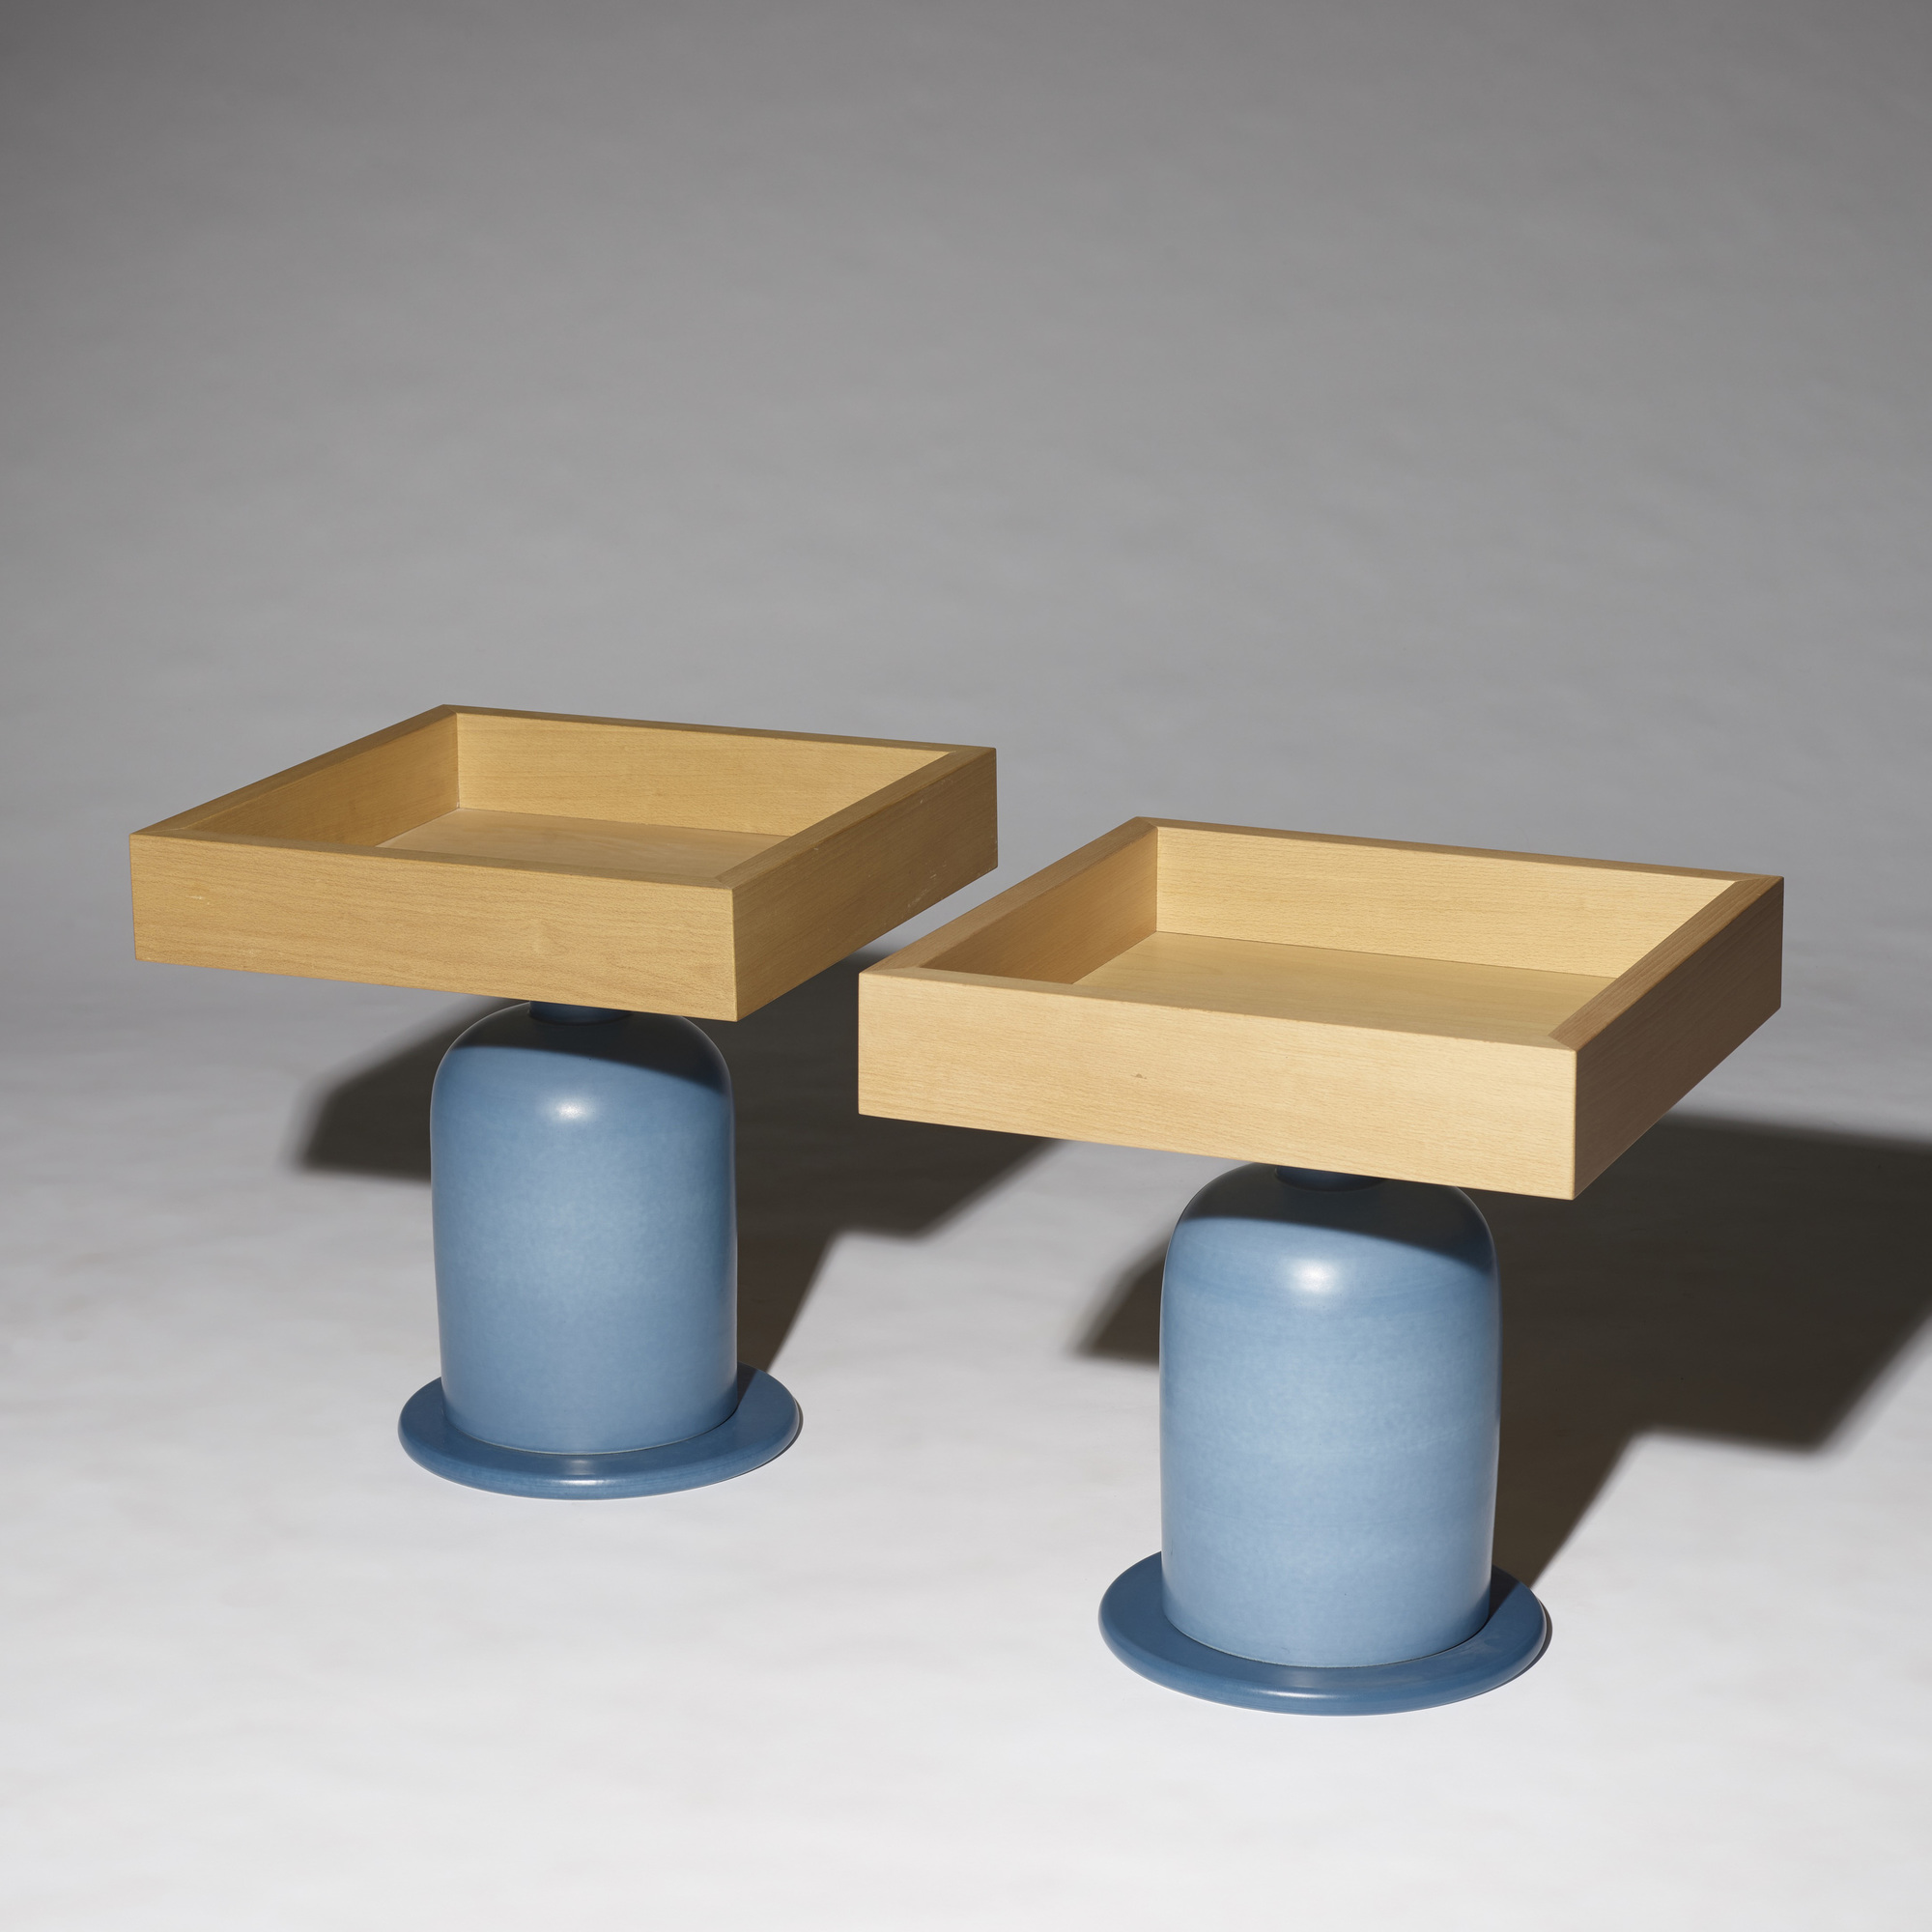 270: Ettore Sottsass / occasional tables, pair (3 of 5)